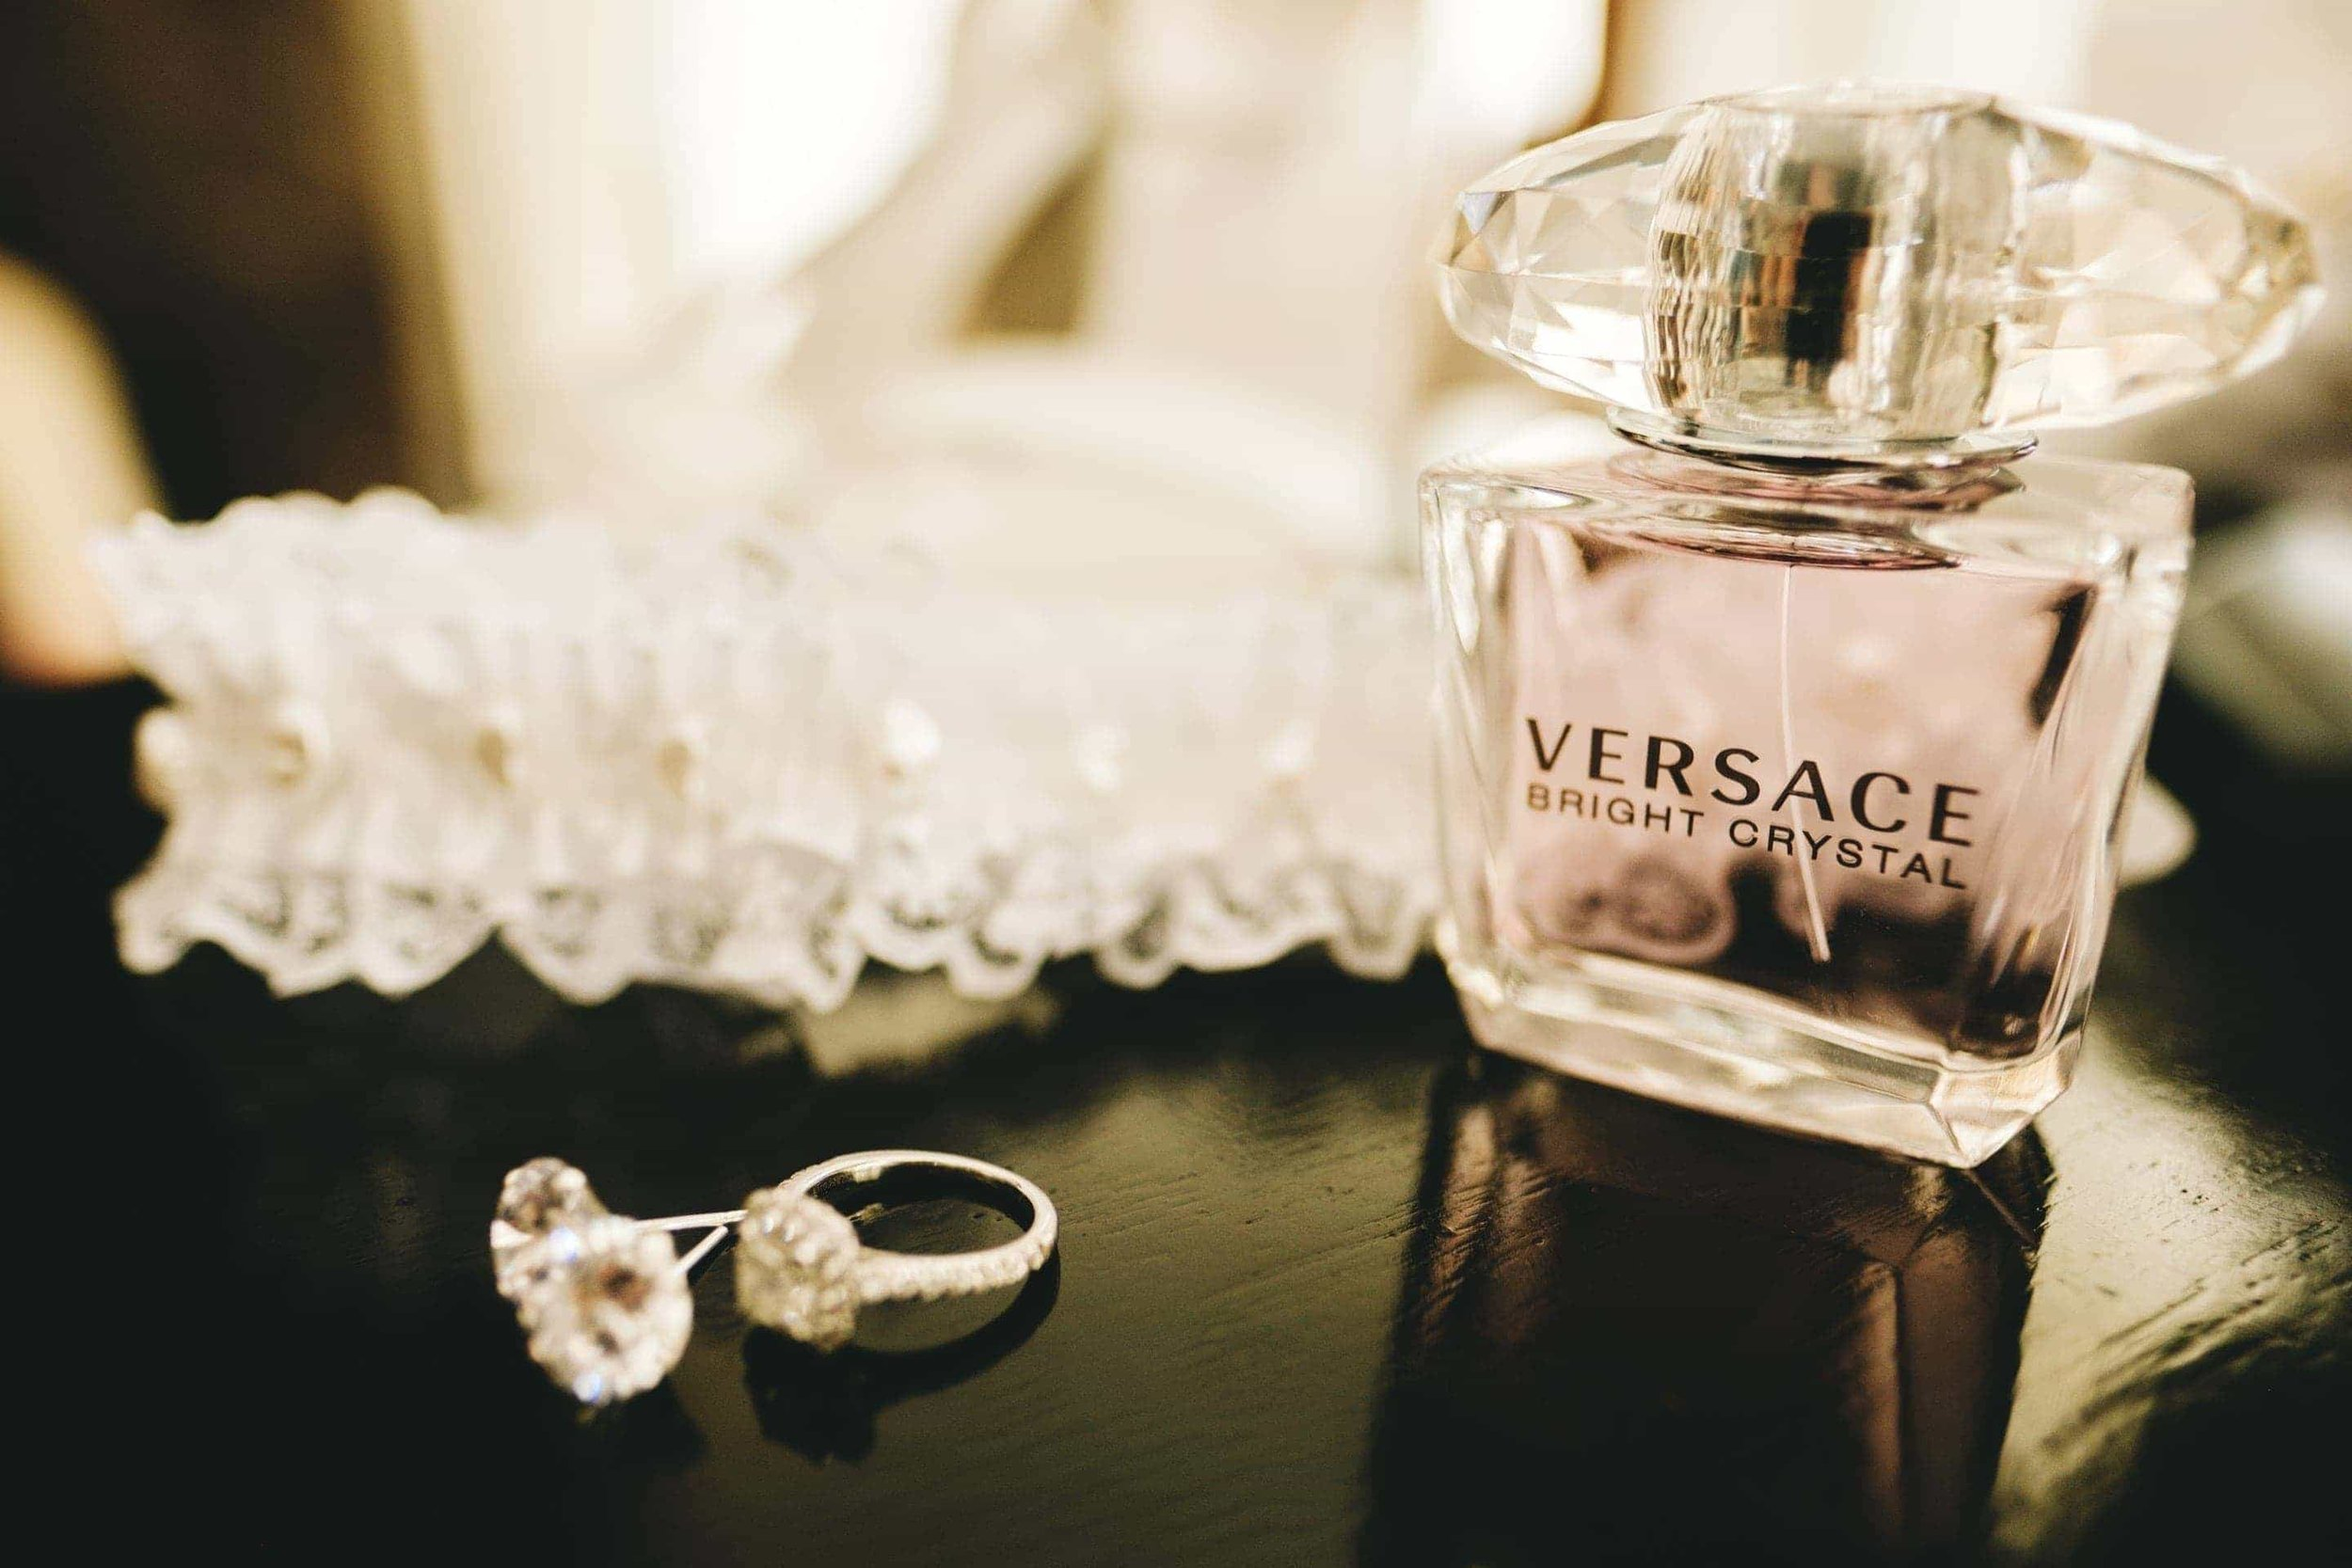 The brides engagement ring, earrings, garter belt and Versace perfume